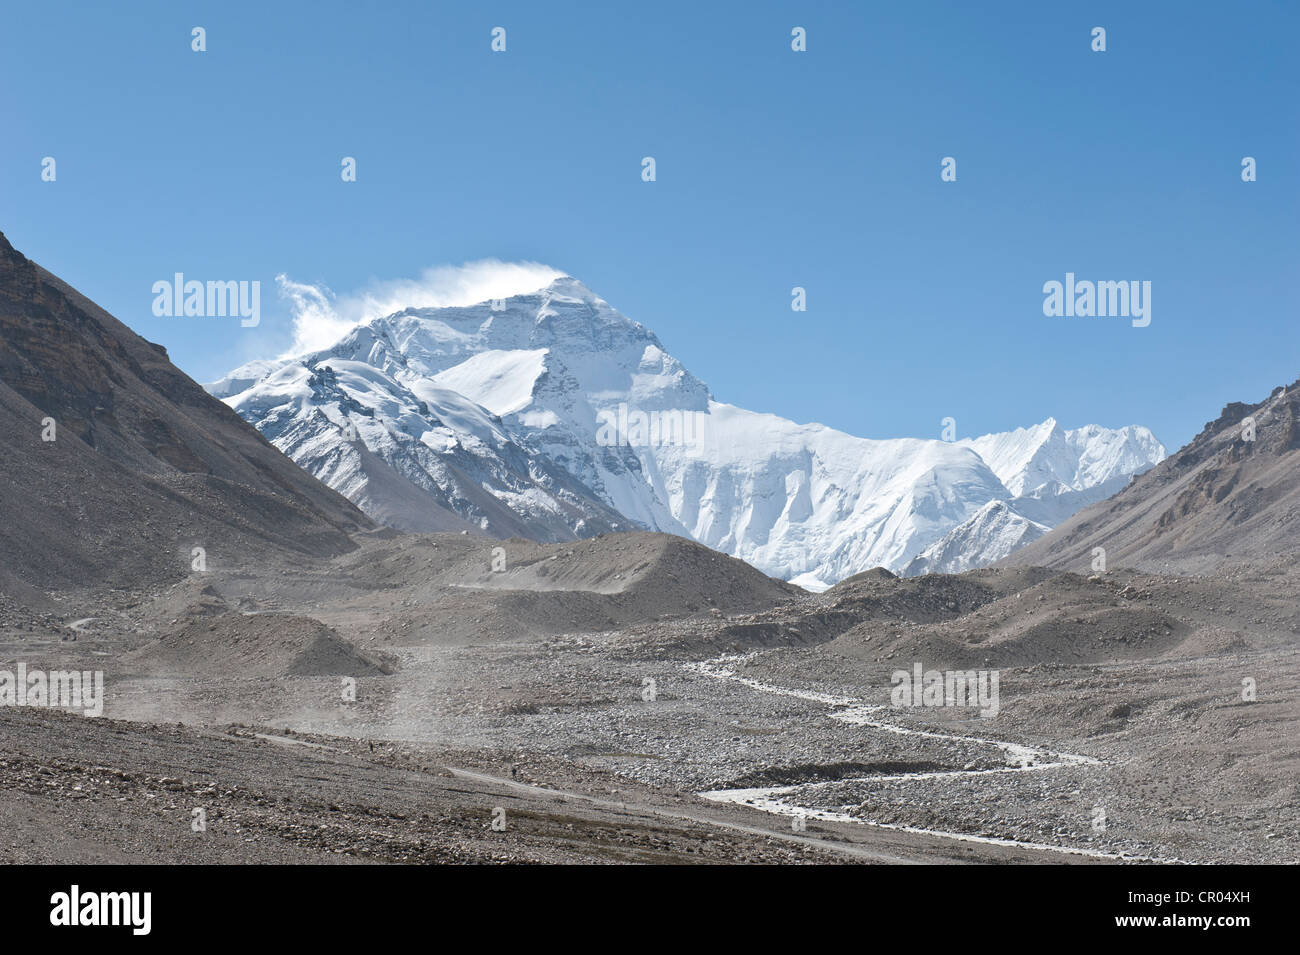 Summit of Mount Everest, Base Camp north, glacier flow, terminal moraine, the Himalayas, central Tibet, U-Tsang - Stock Image